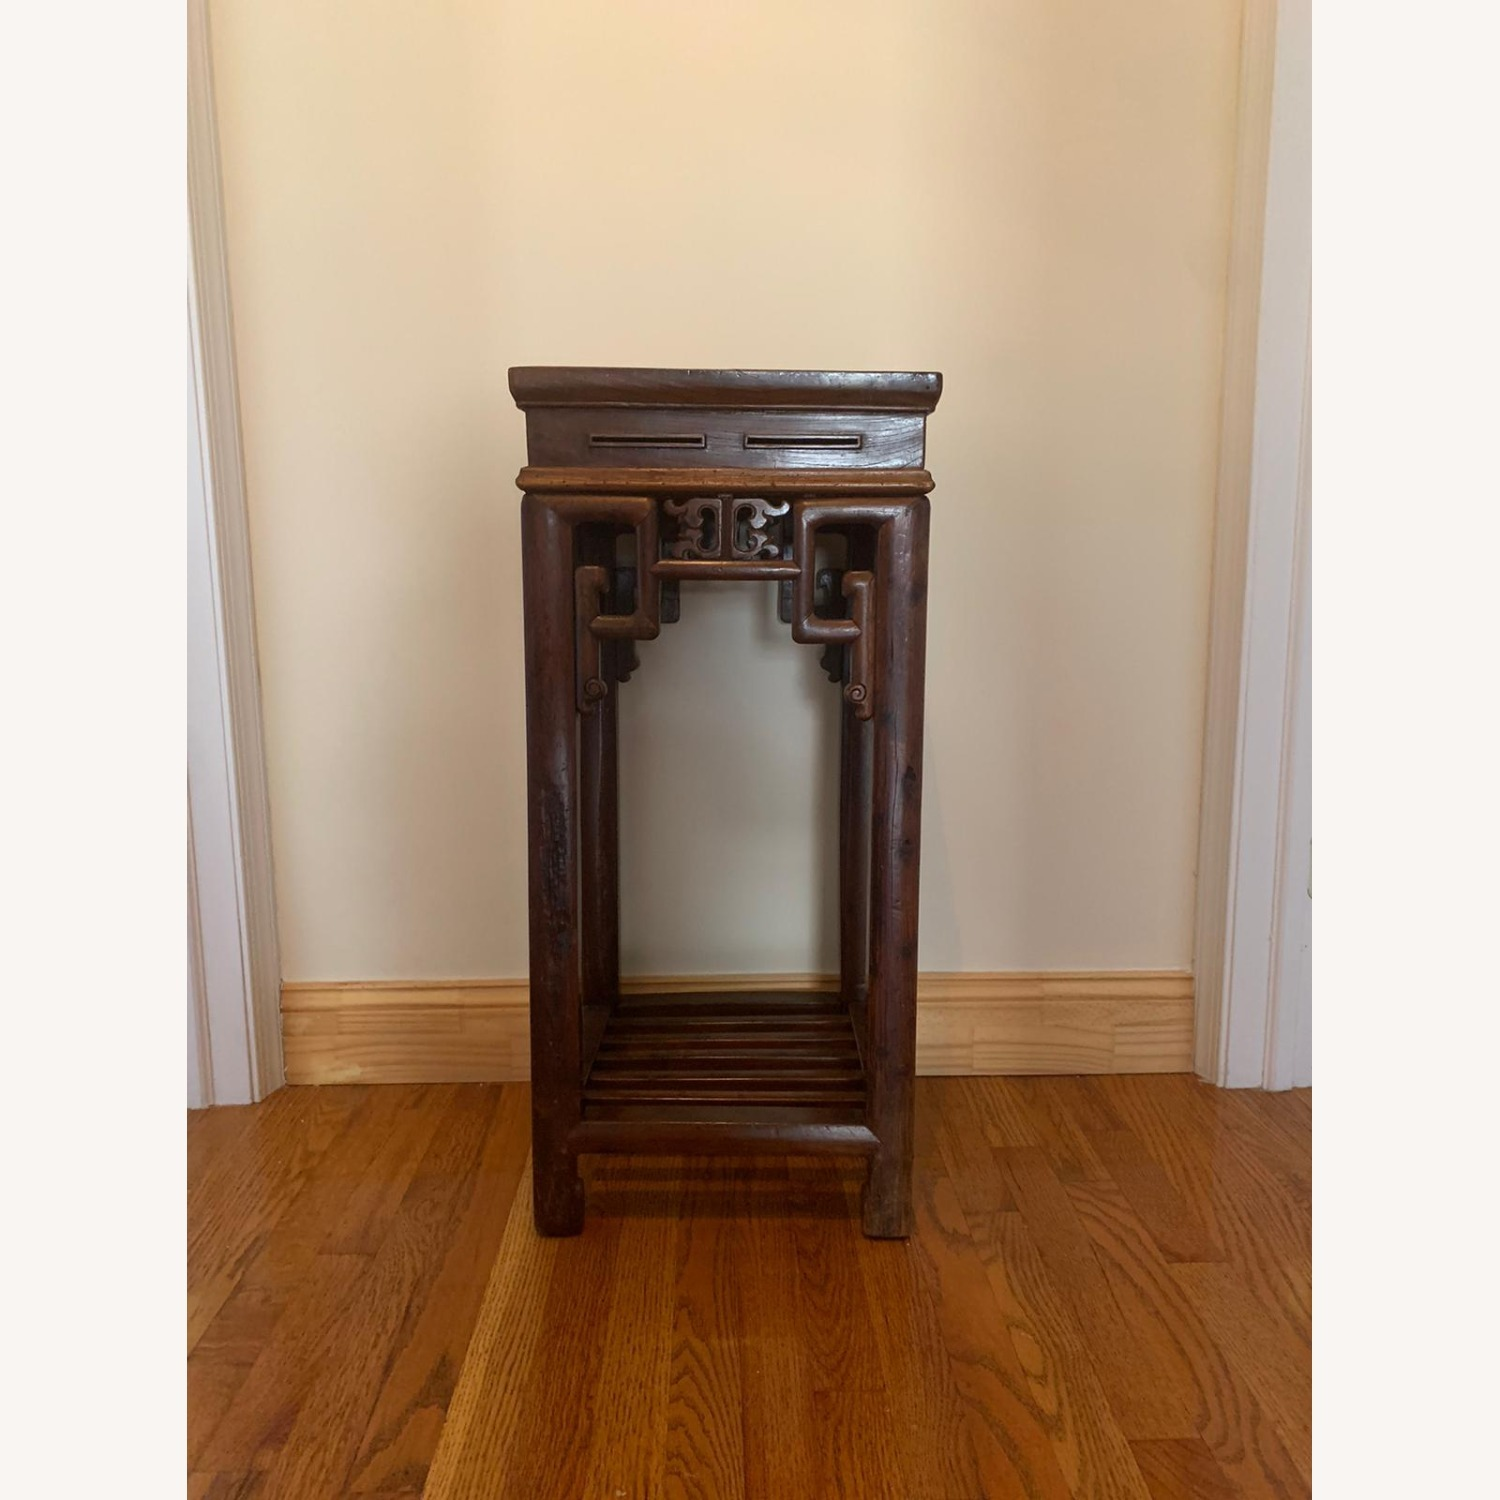 ABC Carpet and Home Chinese Antique Wood Pedestal - image-1